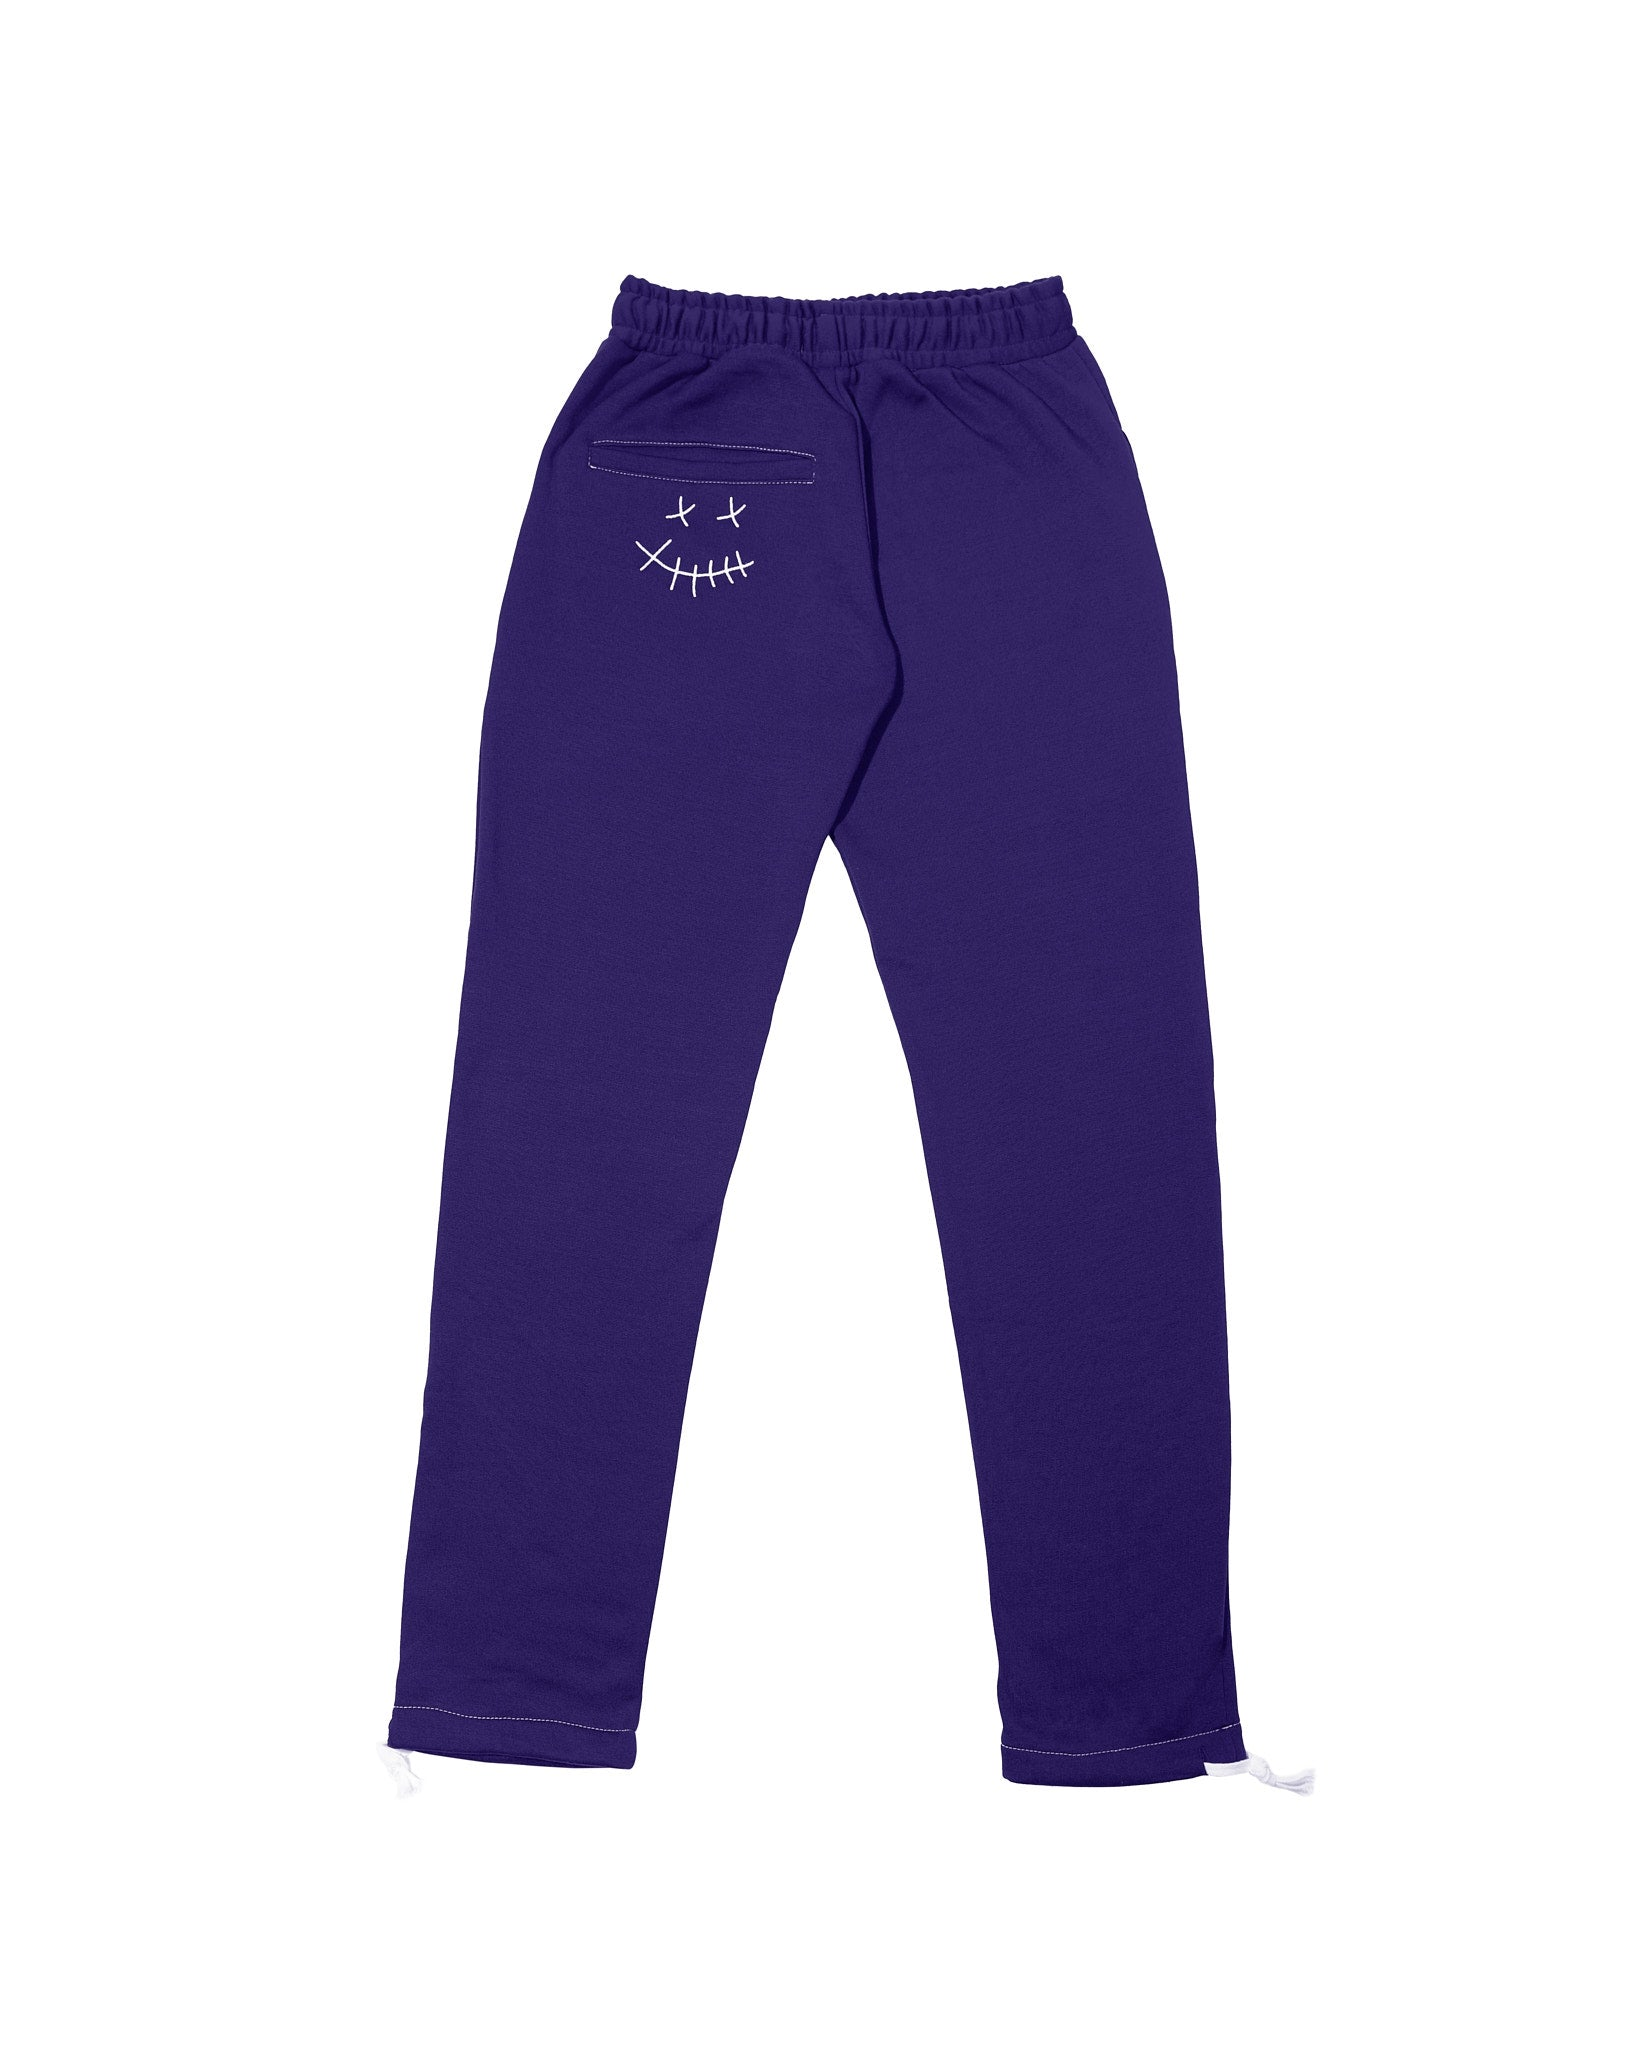 ROYAL PURP SWEATPANTS